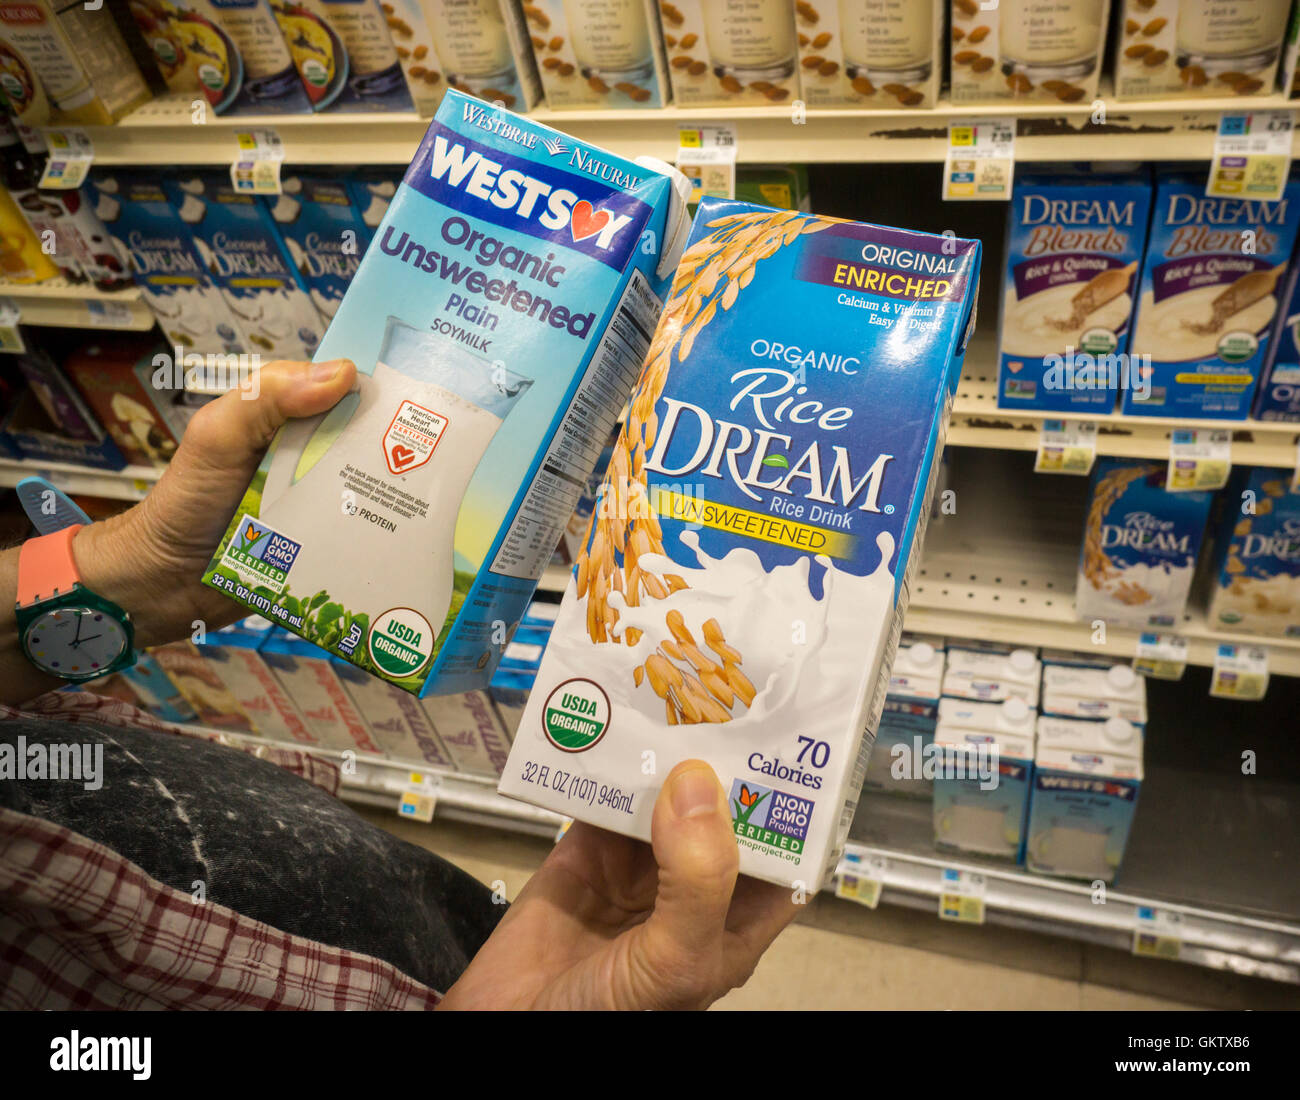 A shopper considers packages of WestSoy soy milk and Rice